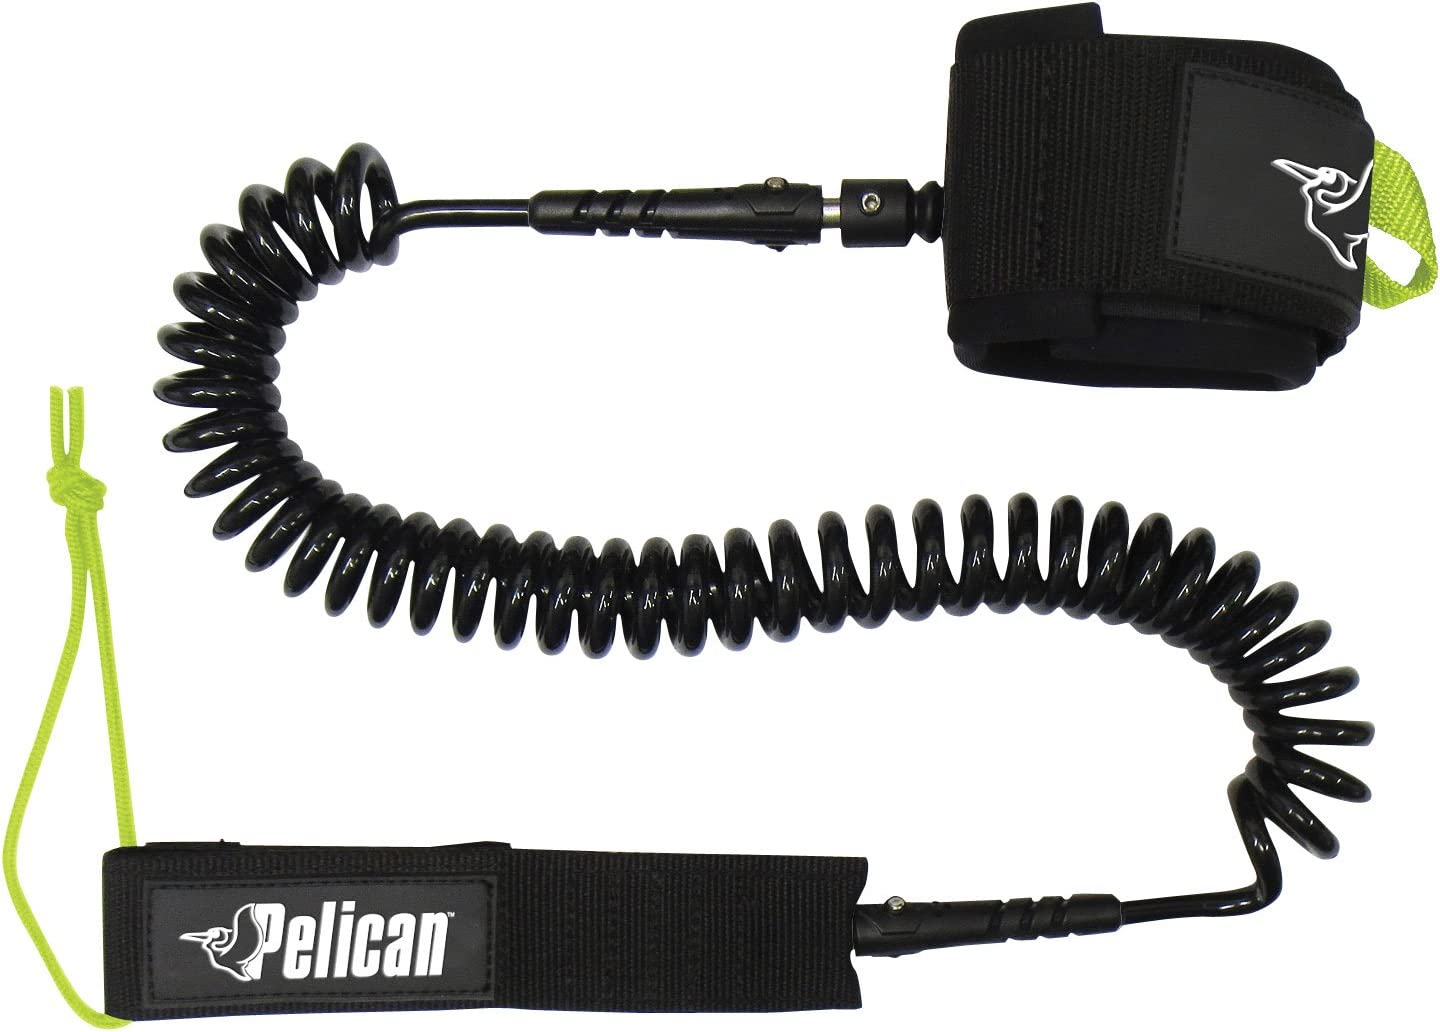 Pelican Boats -SUP Premium Unisex Ankle Leash – PS1543 - Stand up Paddle Board Hook-and-Loop System with Comfortable Neoprene Padding at Ankle